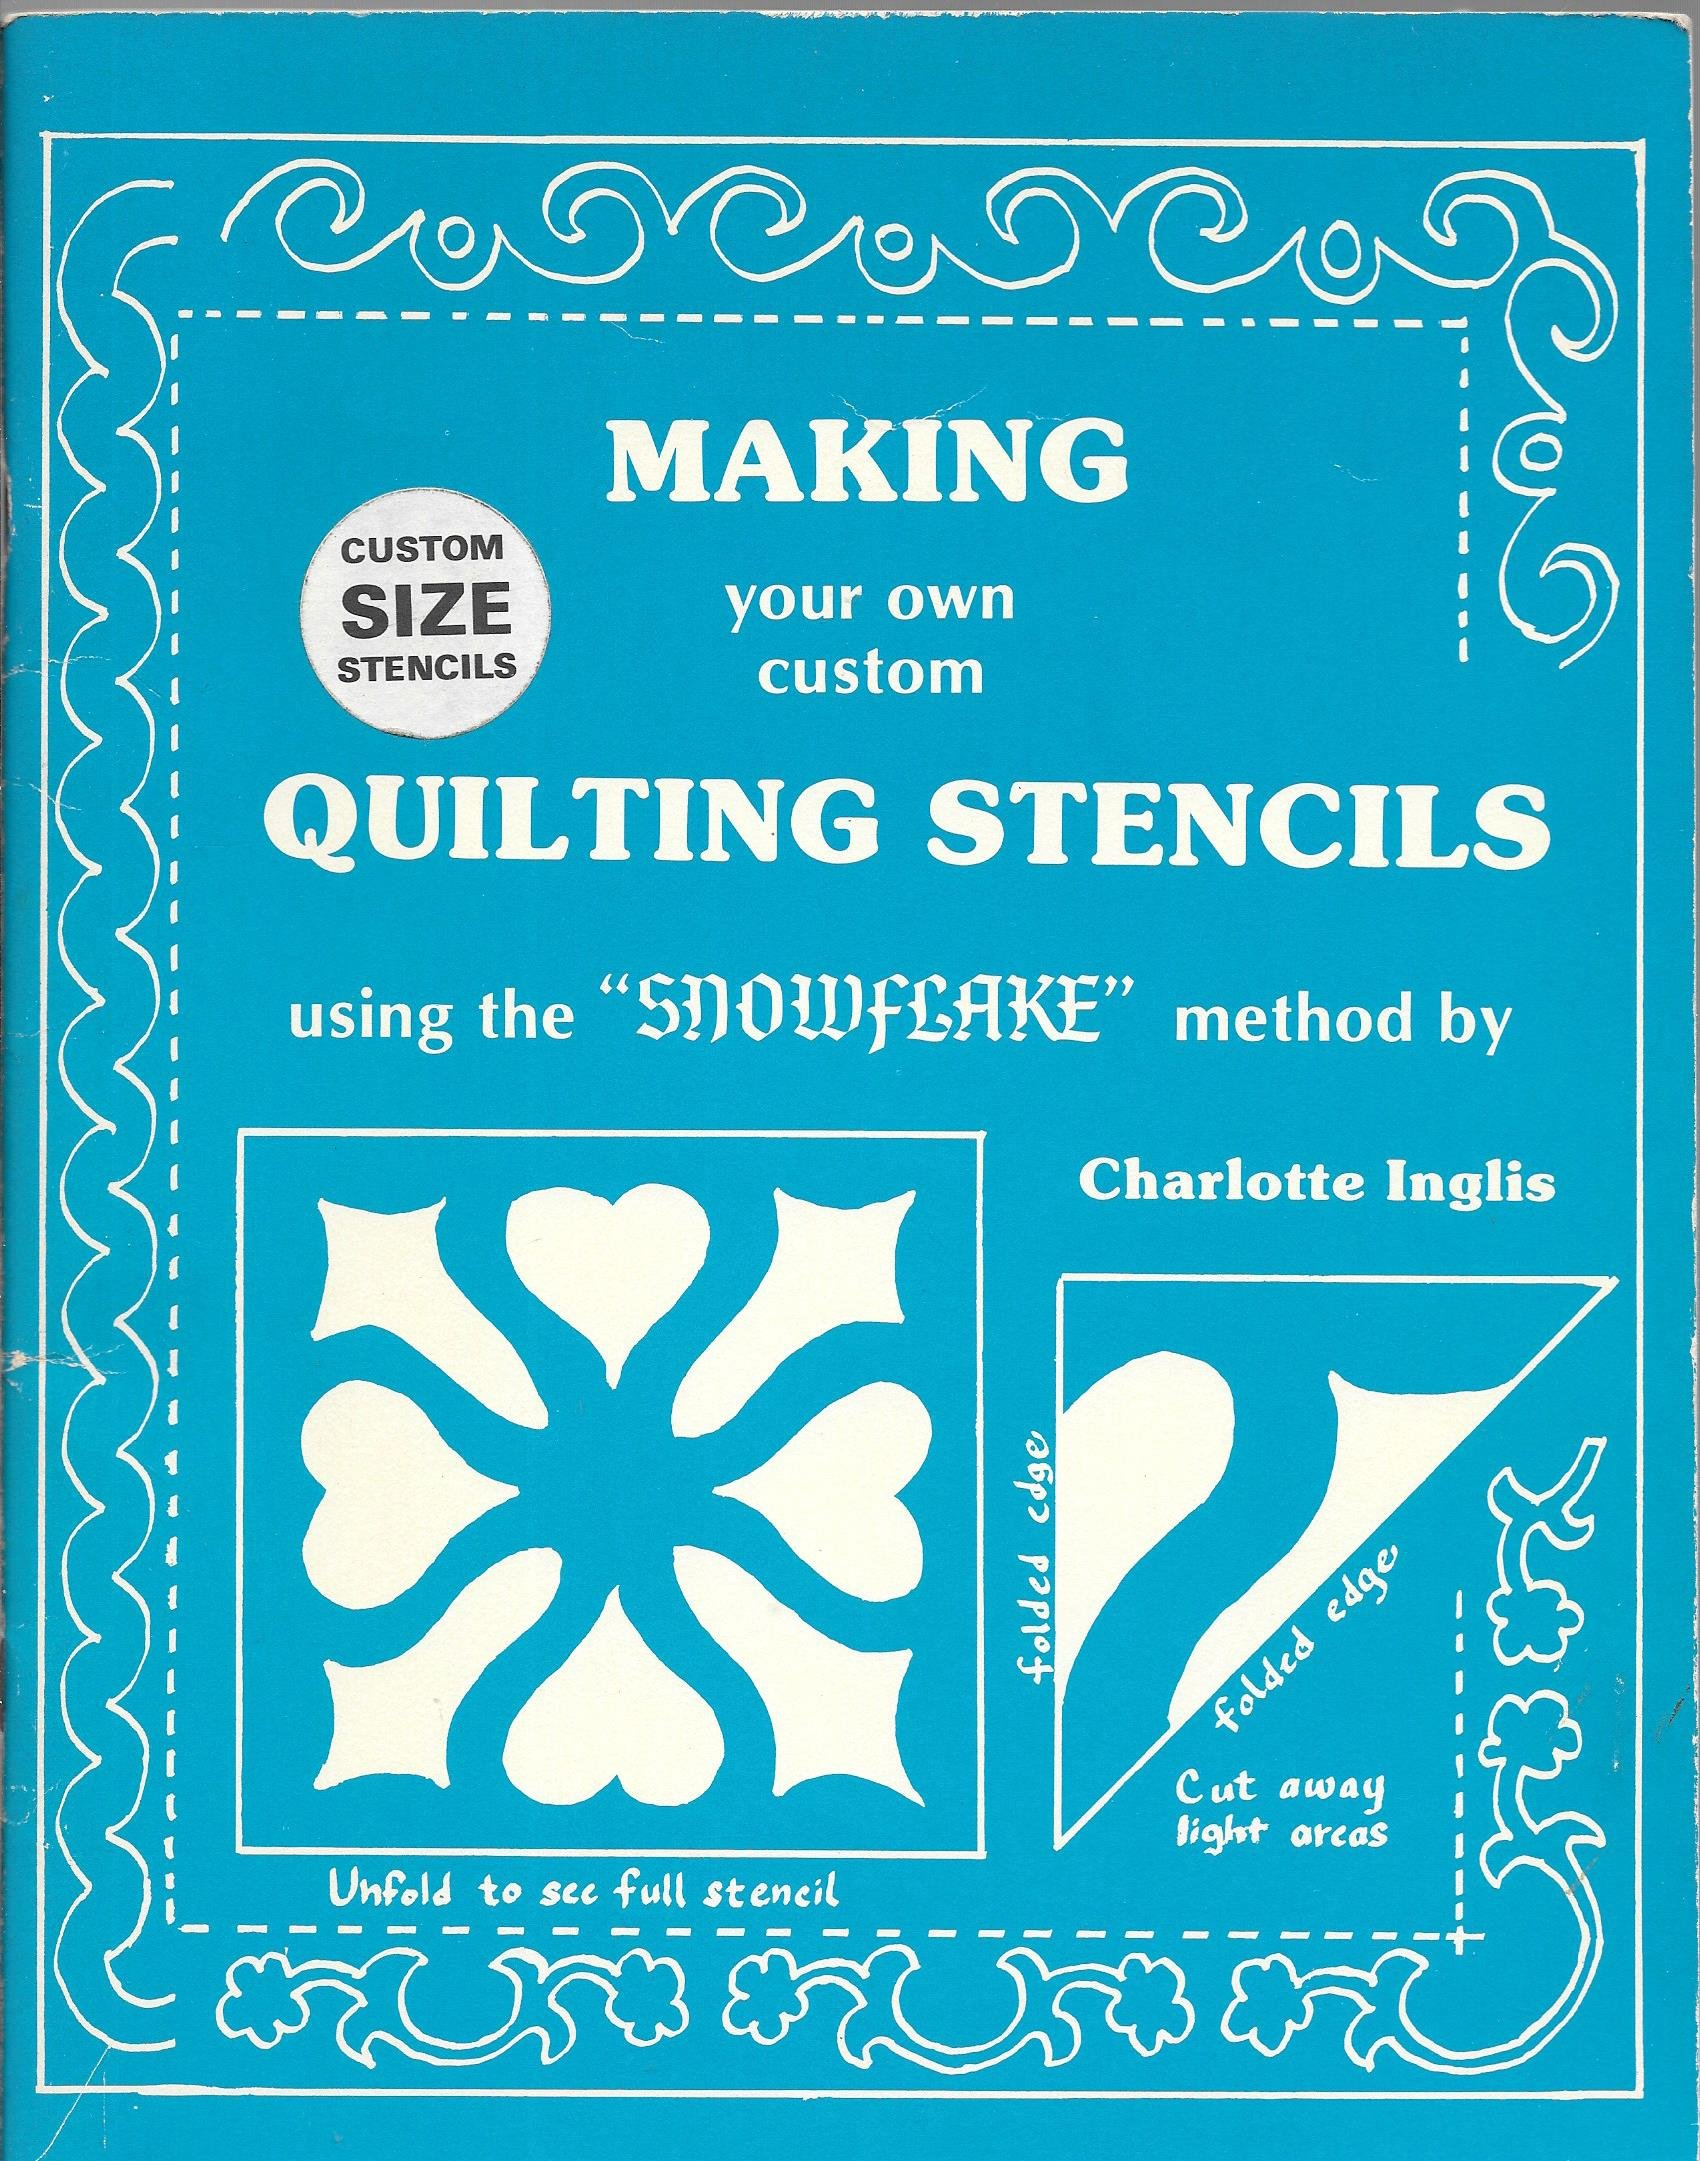 Making your own custom quilting stencils using the snowflake method